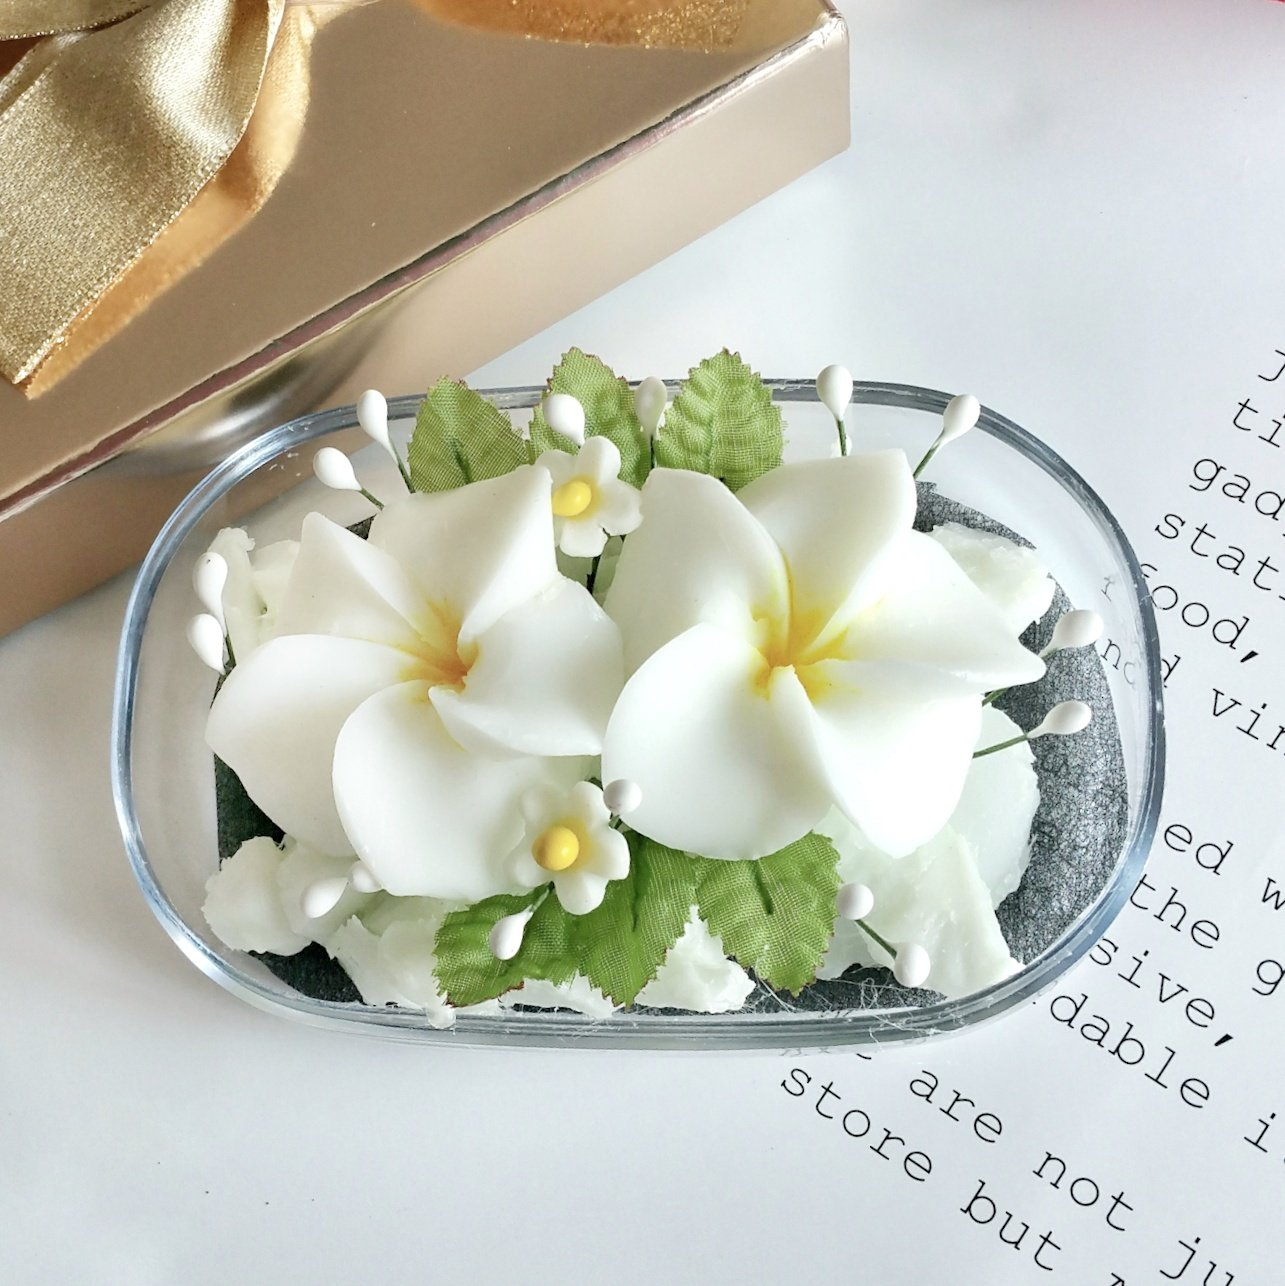 Double White Plumeria Hand Carved in Soap Bar with Jasmine Aroma Essential Oil, Decorative Soap Carving by Thai Artisan